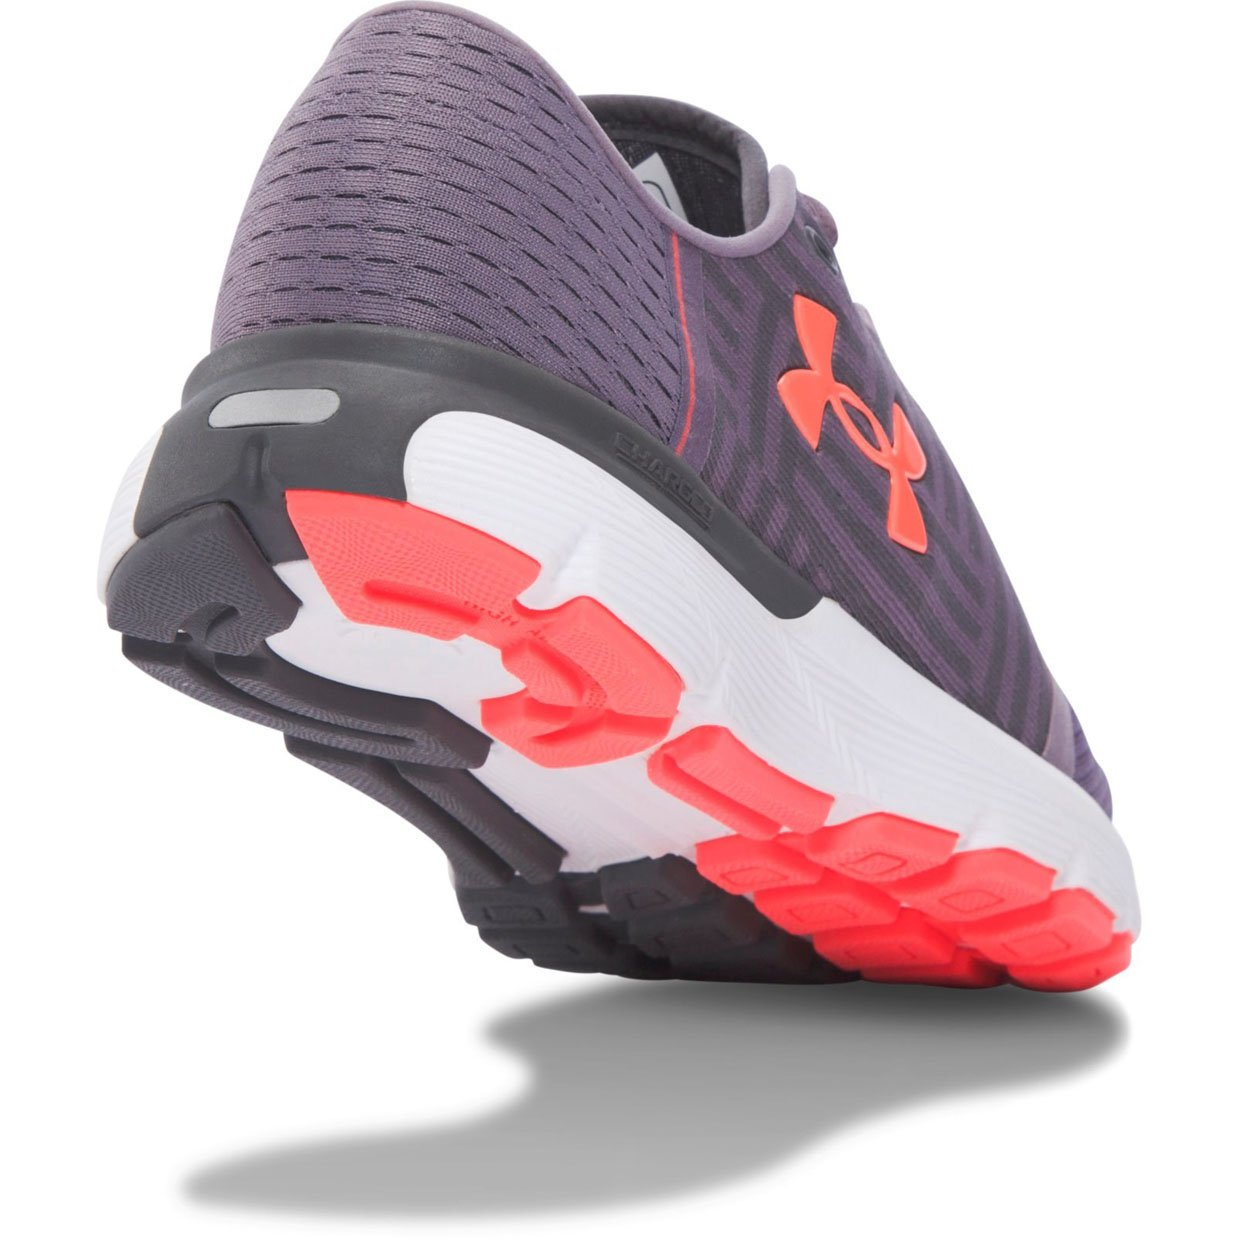 Кроссовки Under armour SpeedForm Gemini 3. Фото N6